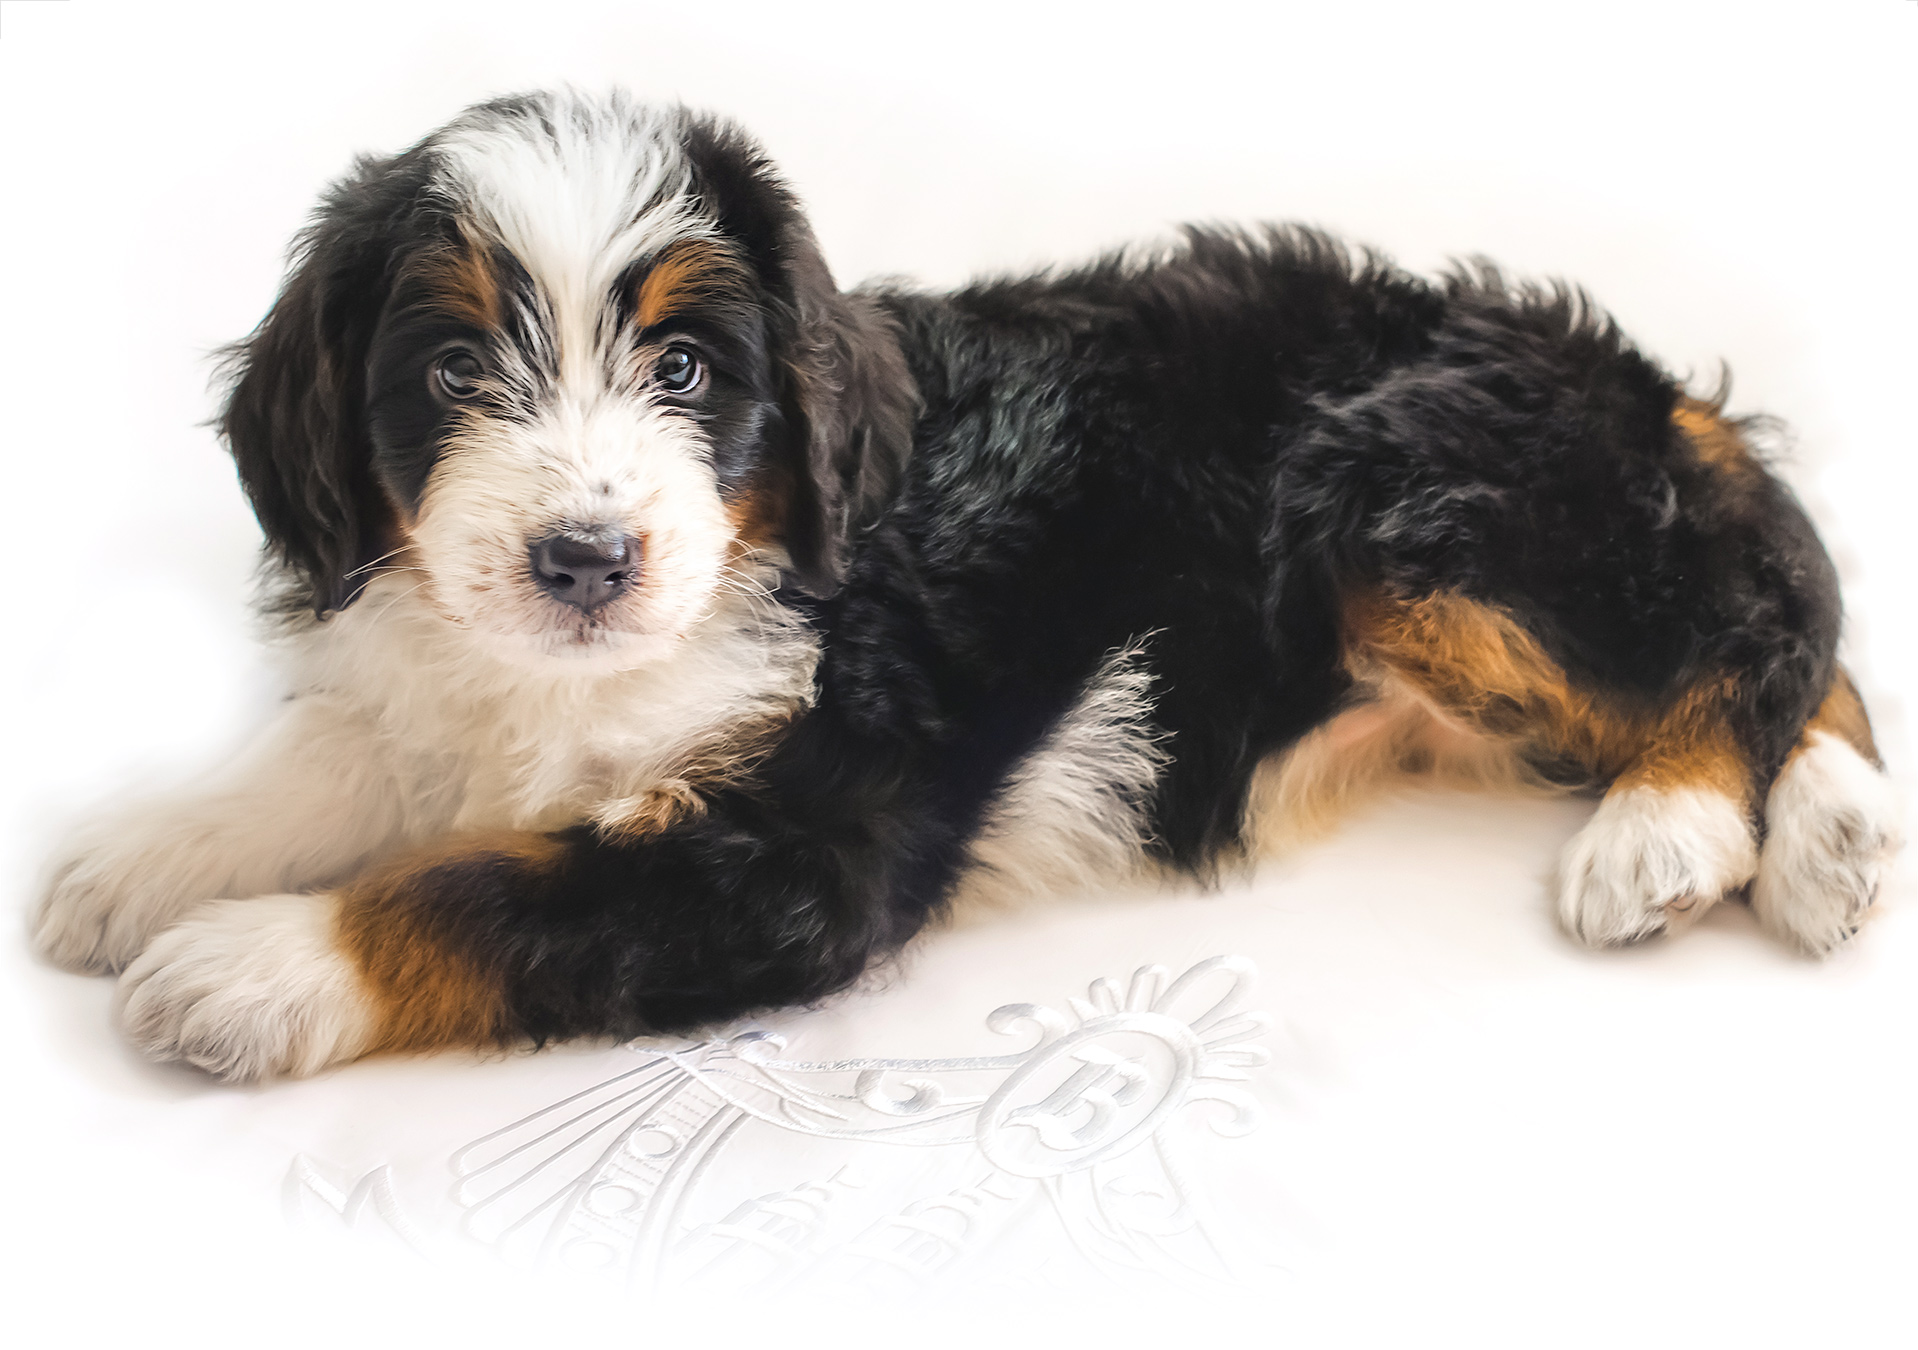 We are boutique Bernedoodle breeders - We specialize in raising beautiful bernedoodle puppies from only the very best breeding lines which make ideal pets, therapy dogs and service dogs.